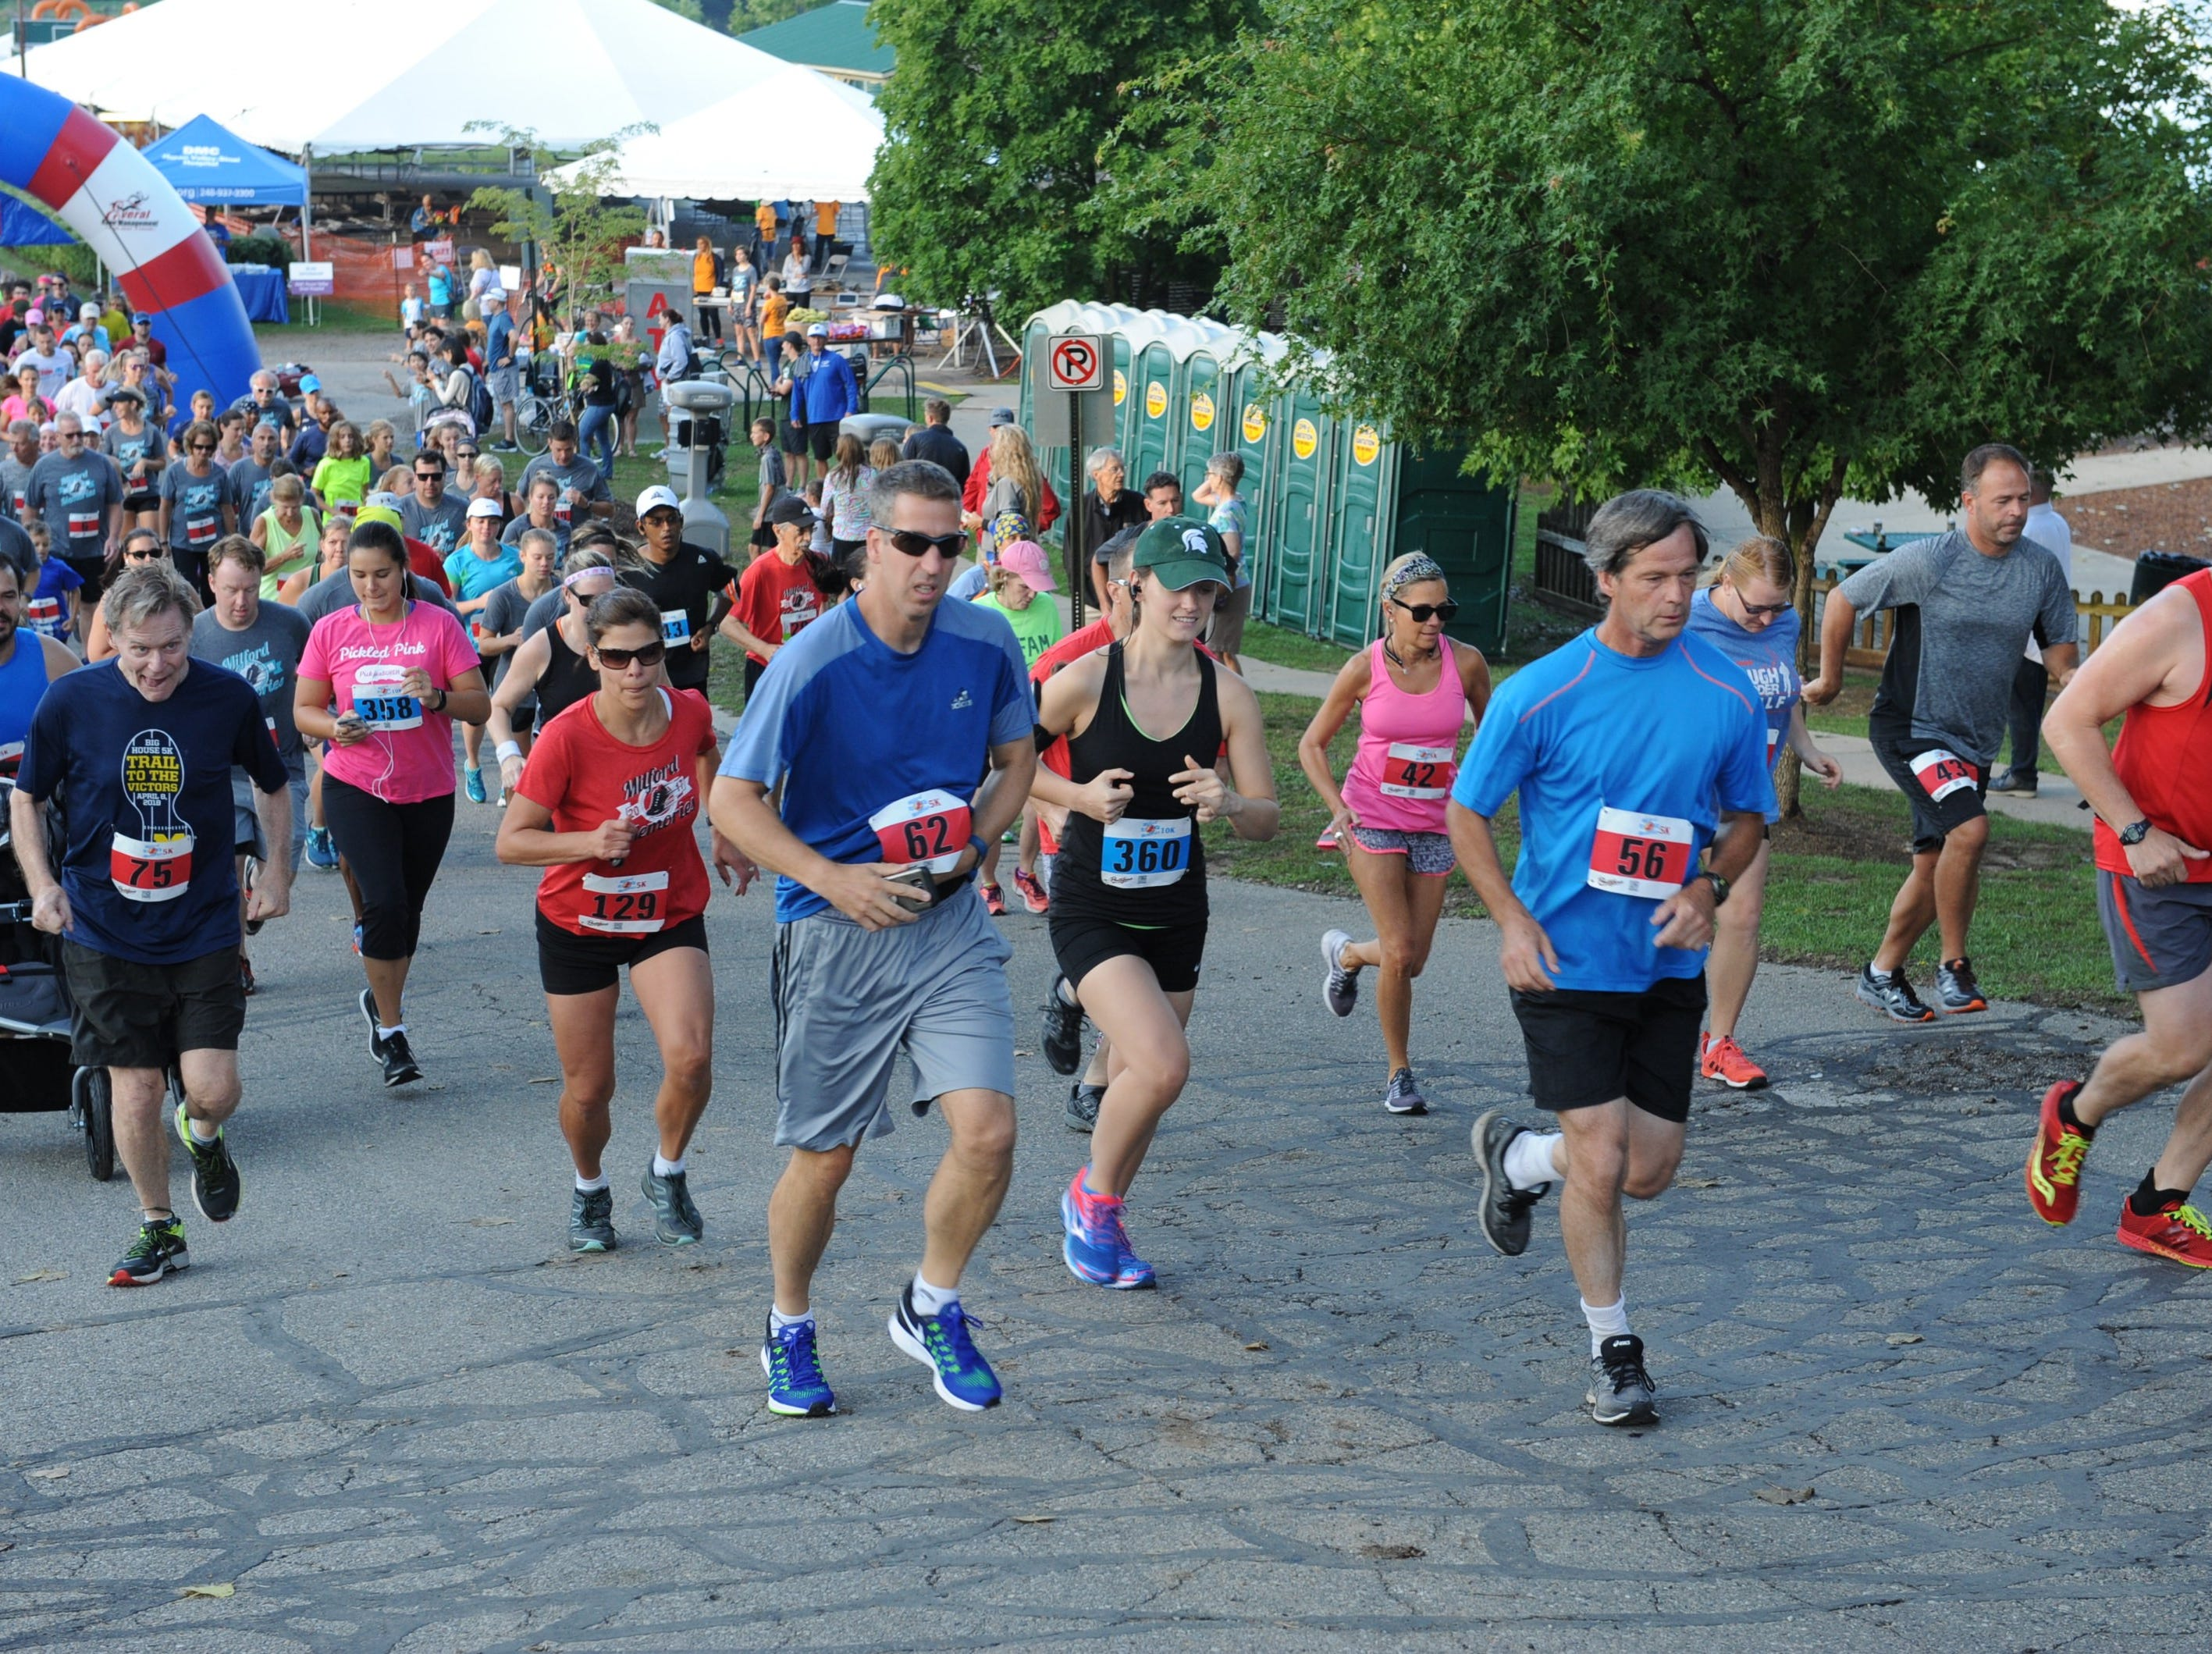 Runners take to the streets of Milford for the start of the 5K and 10k.